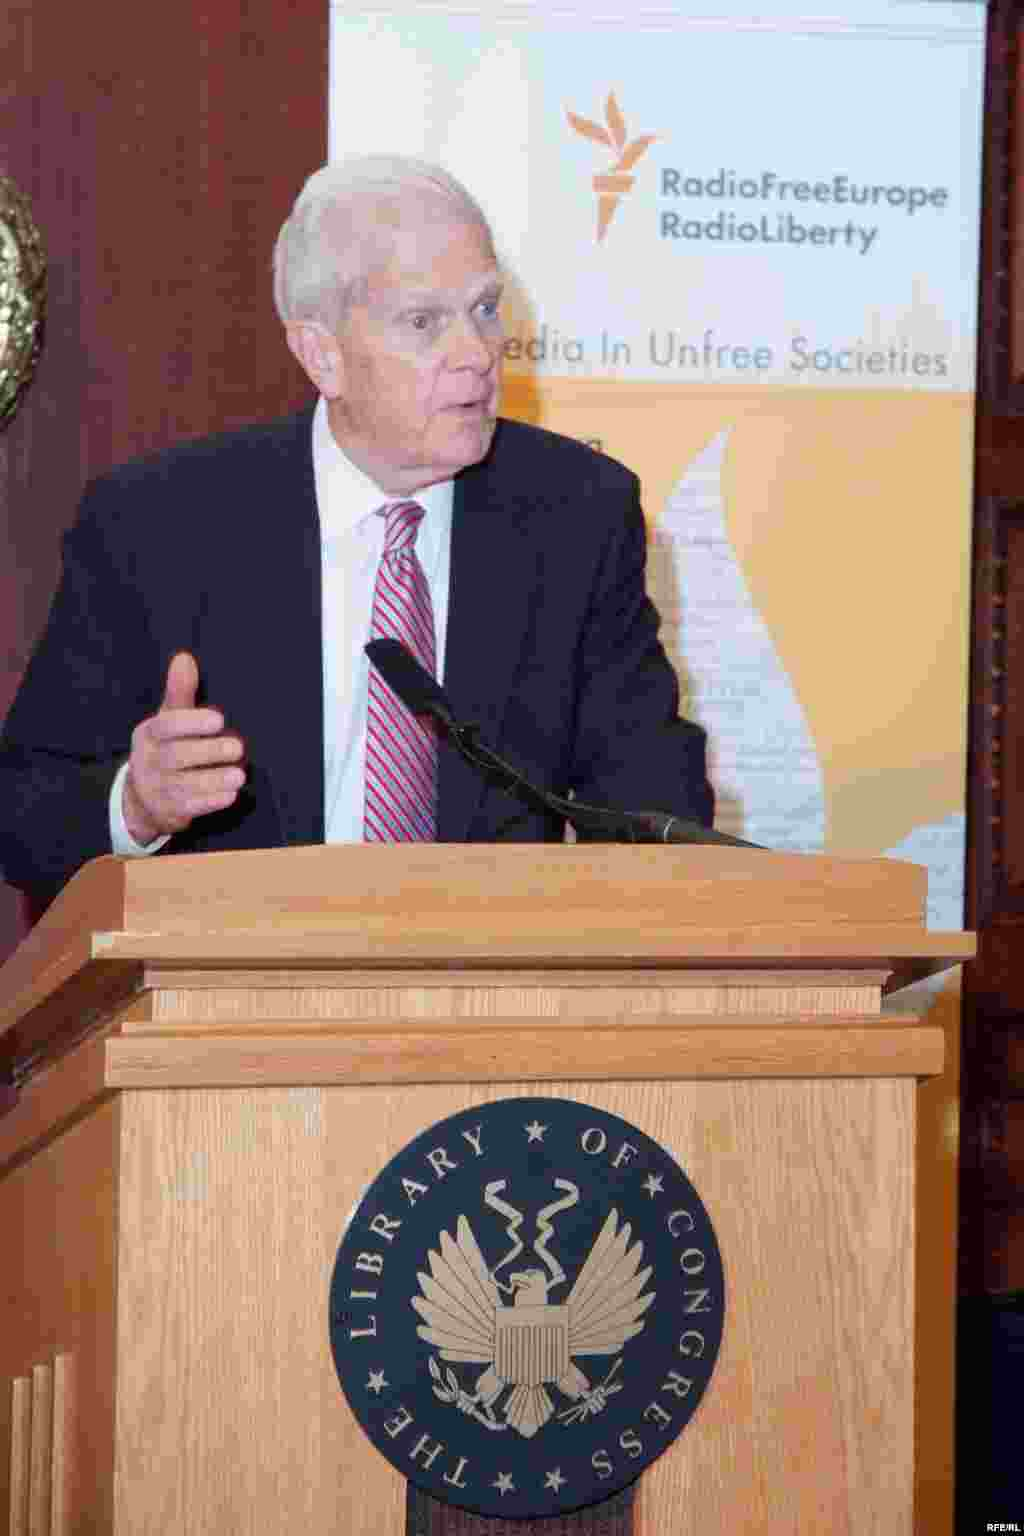 Librarian of Congress Dr. James Billington speaking at the opening of the exhibit. - (Photo by P. Alunans)